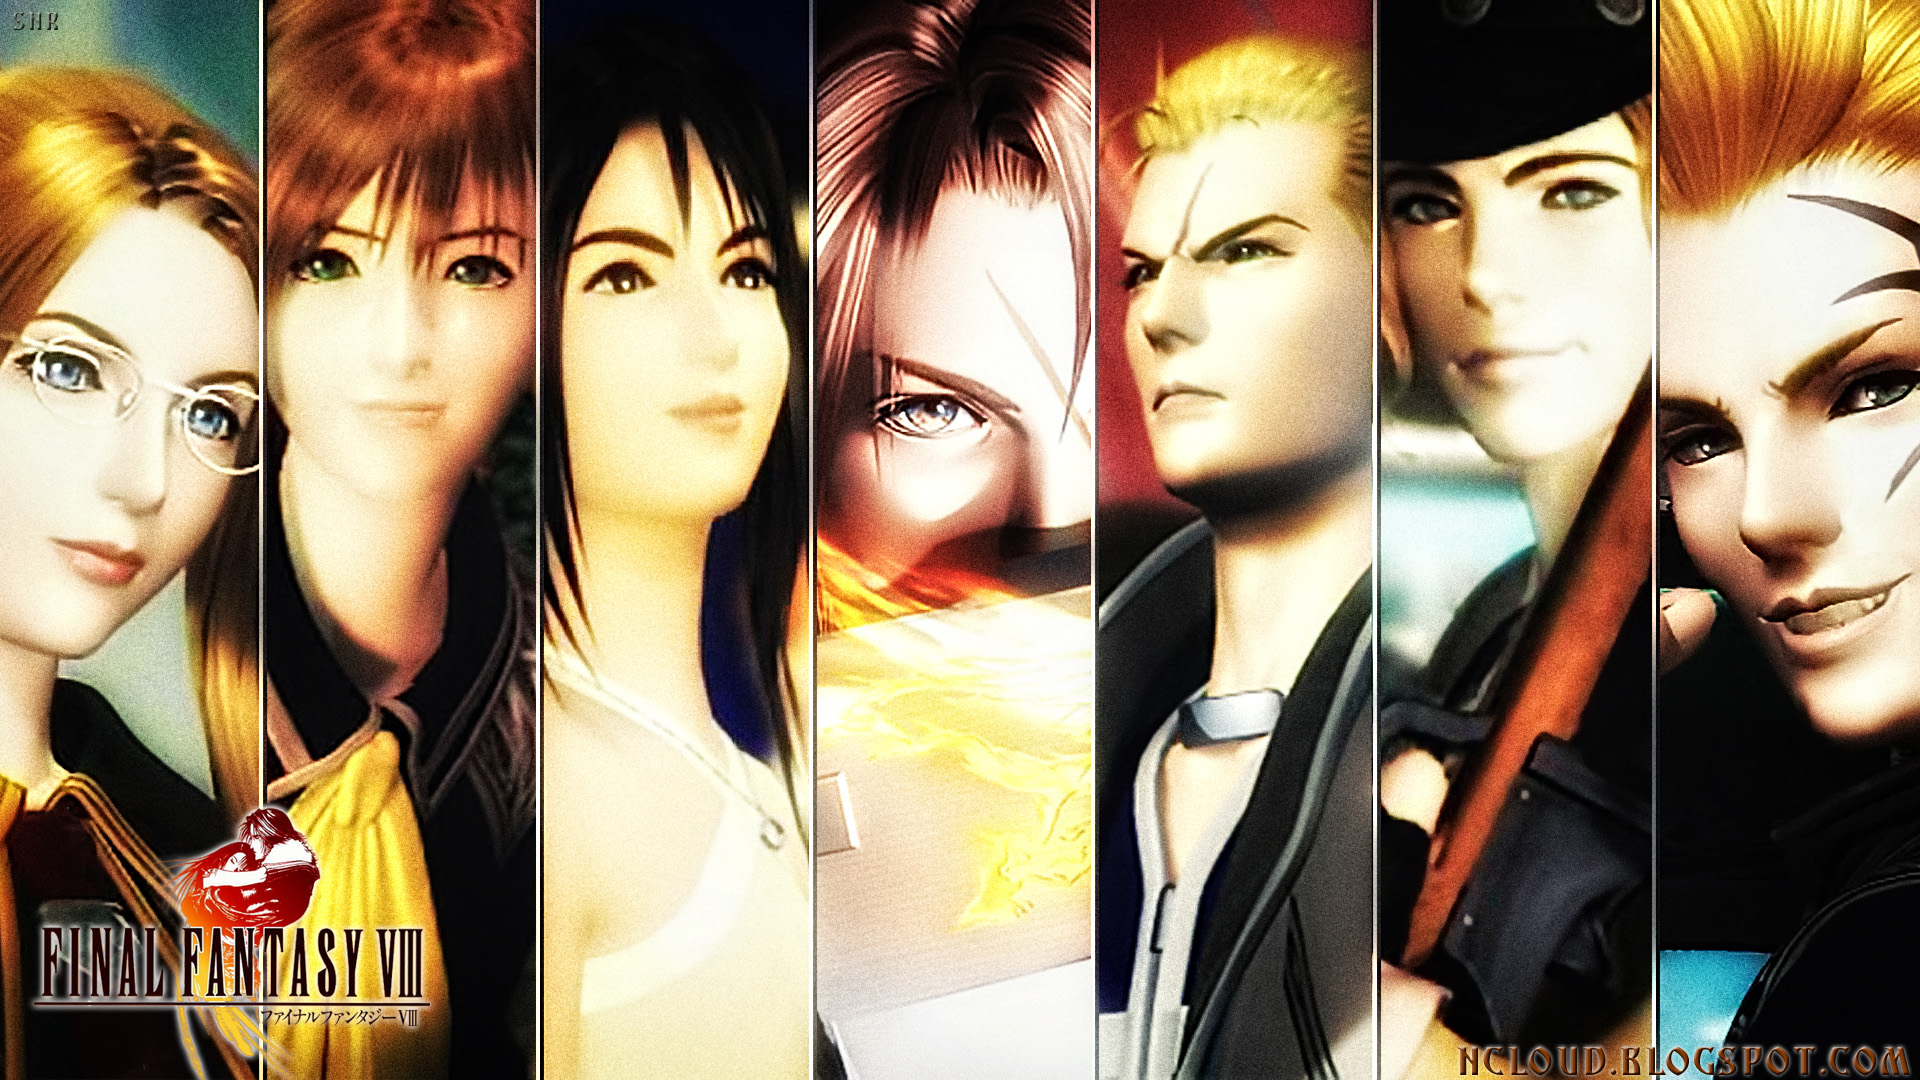 Free Download Games Movies Music Anime My Final Fantasy Viii Hd